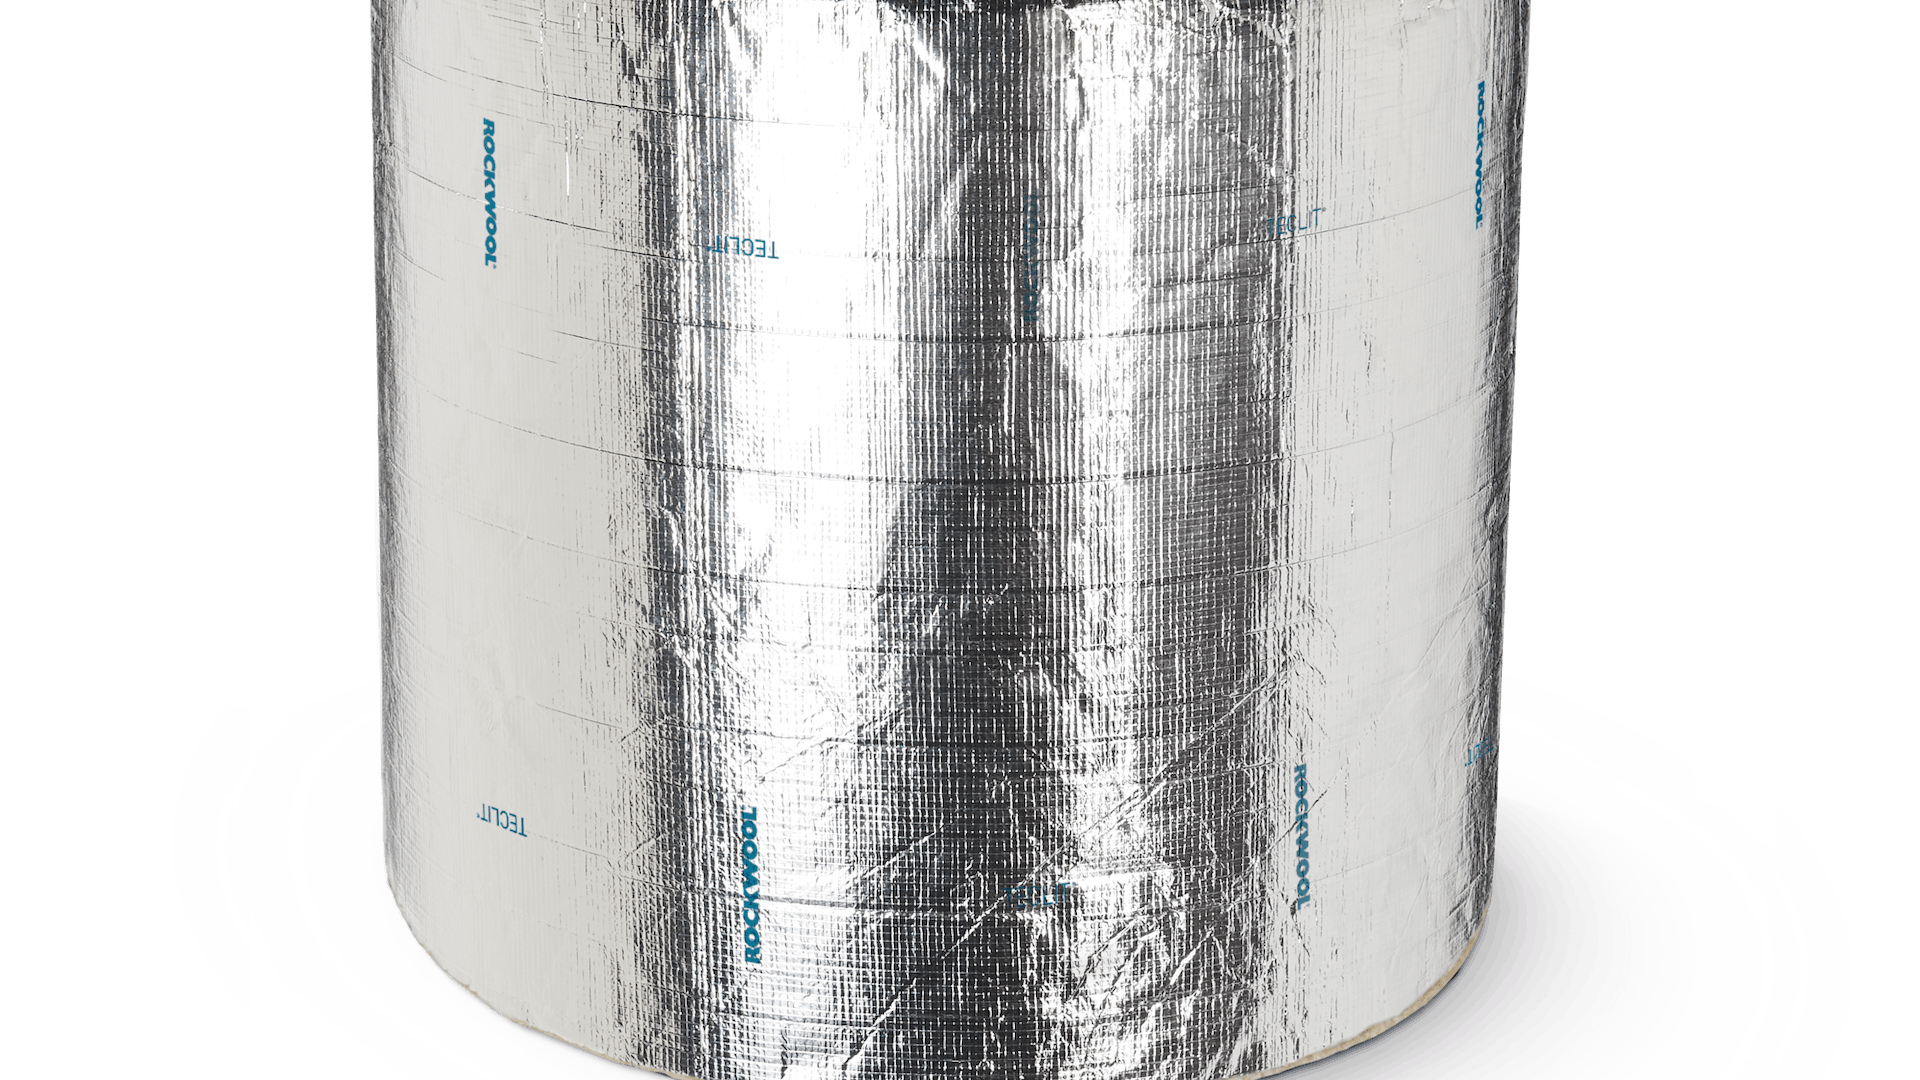 TECLIT LM, lamella mat with strong aluminium foil, HVACR, internal cold insulation, anti-condensation, pipelines, refrigeration, air conditioning, TECLIT System components